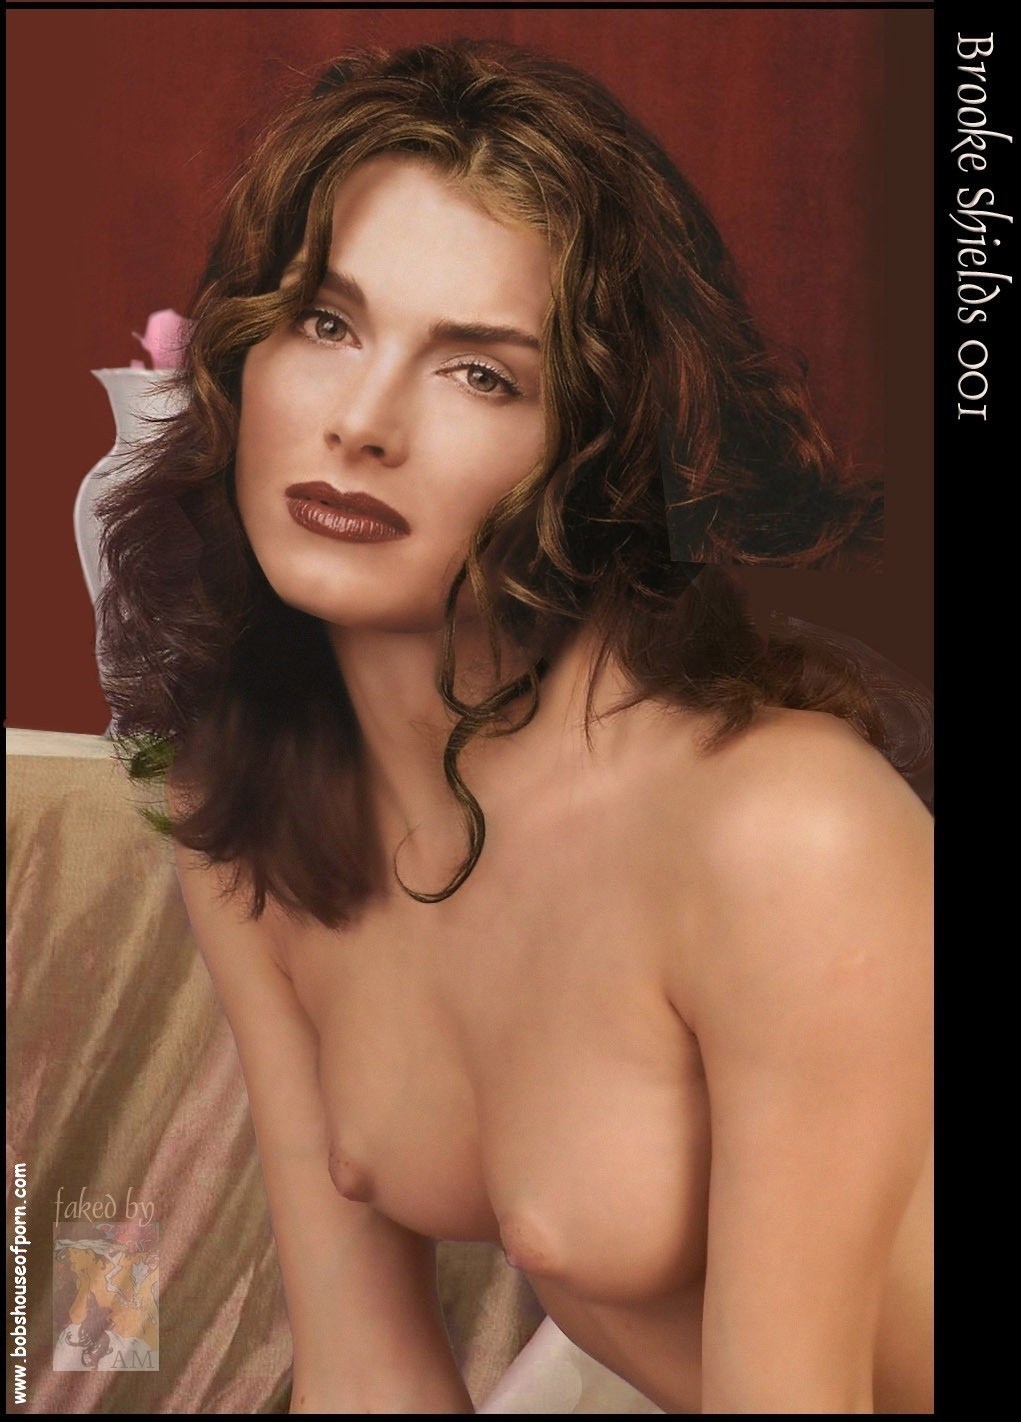 Little young russian pussy $ Brooke Shields naked